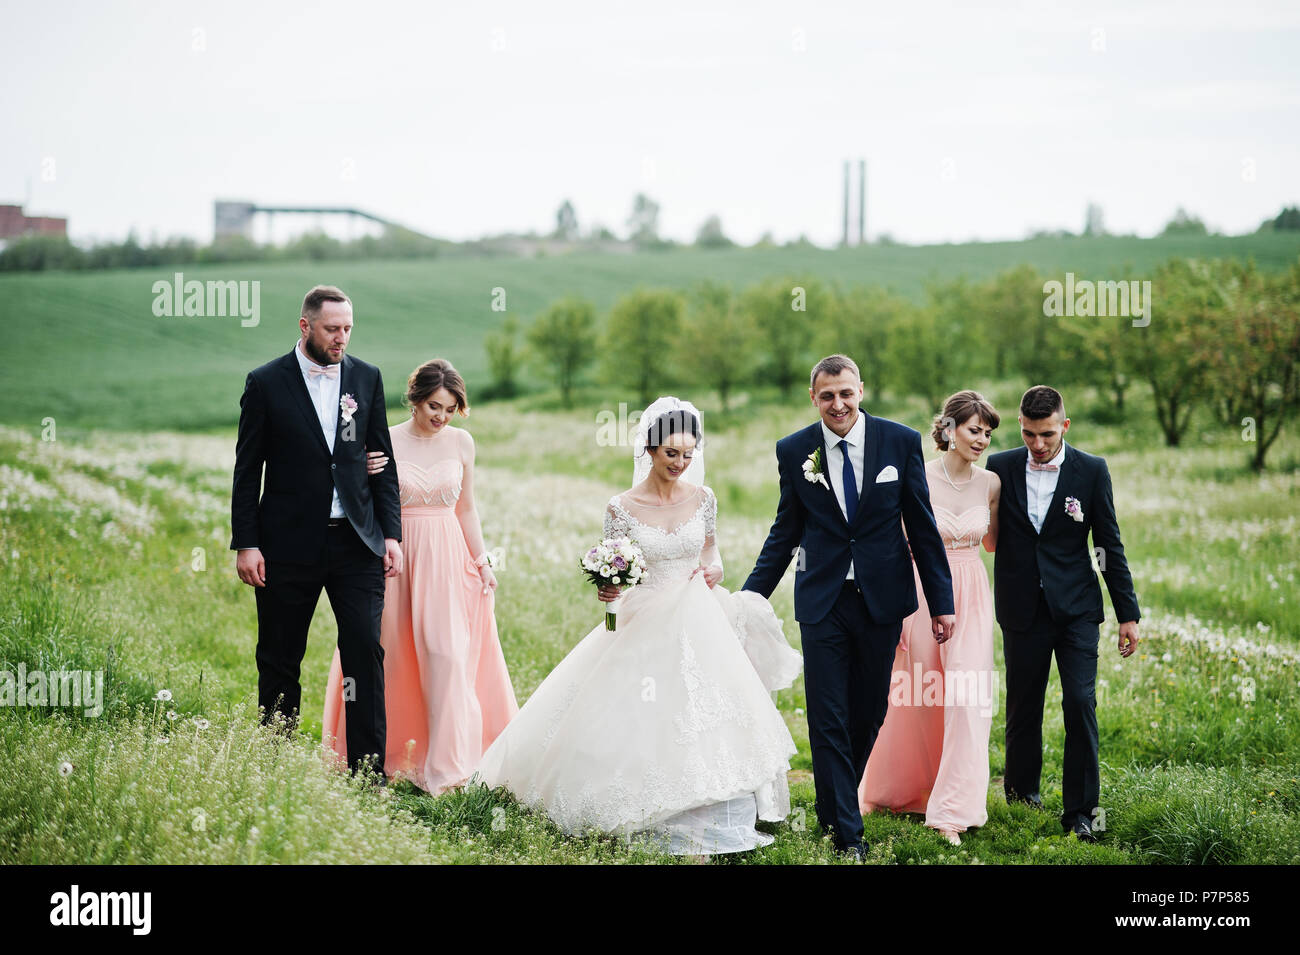 My Best Friends Wedding High Resolution Stock Photography And Images Page 6 Alamy